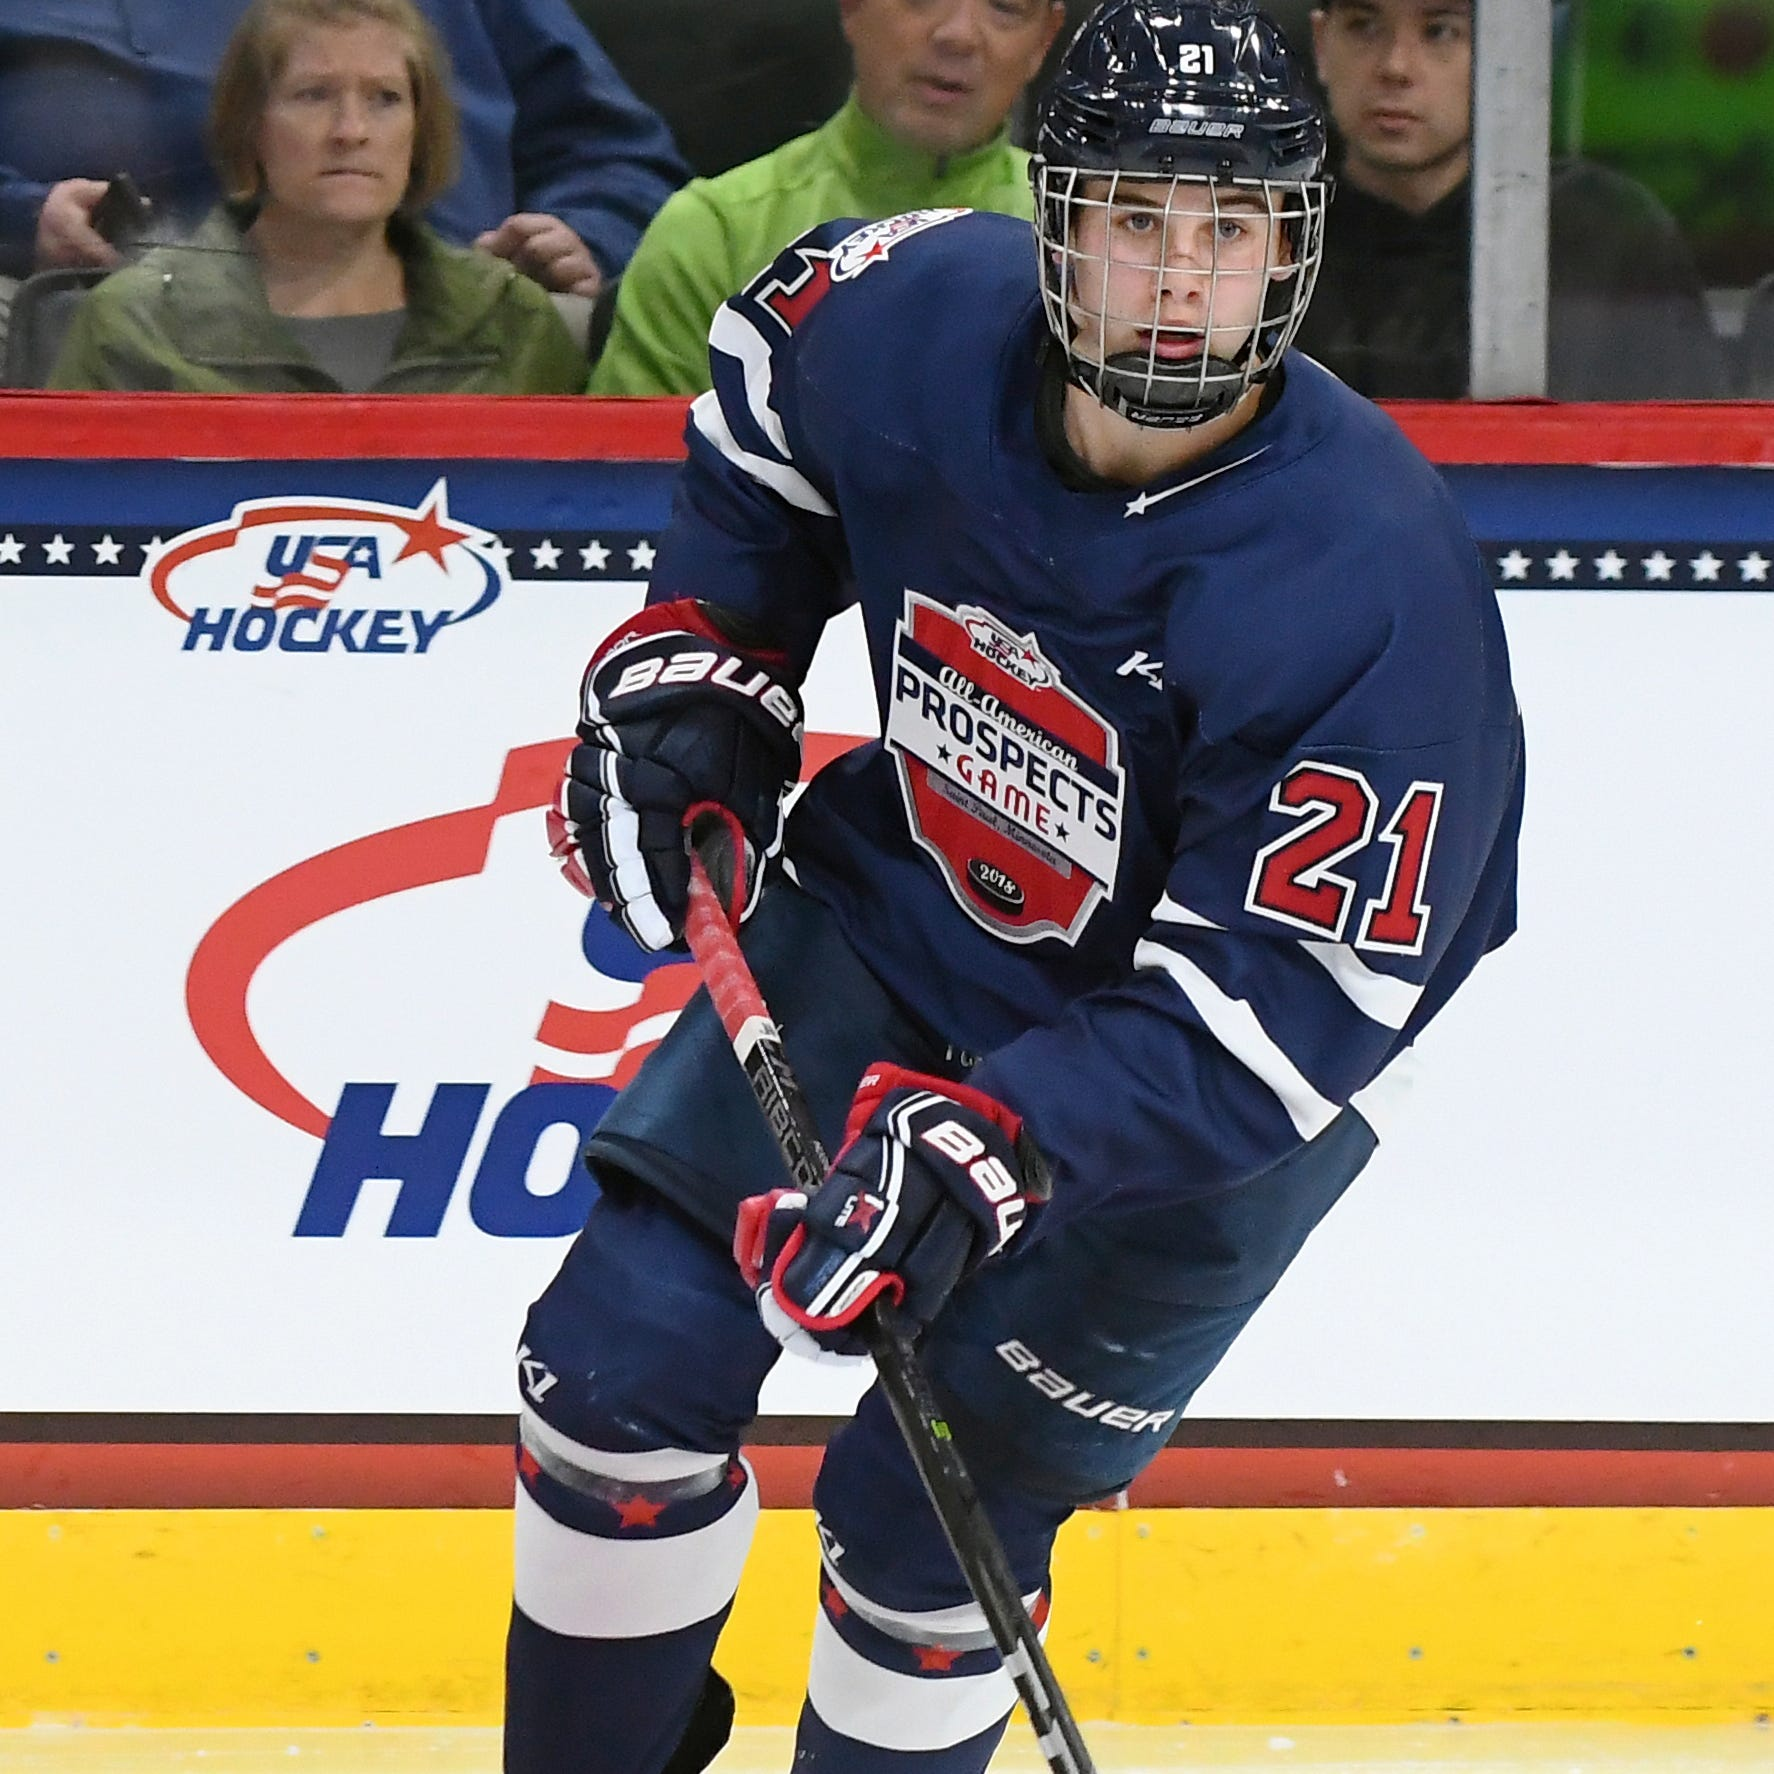 Jack Hughes set to 'revolutionize' hockey but will be grateful for any NHL team